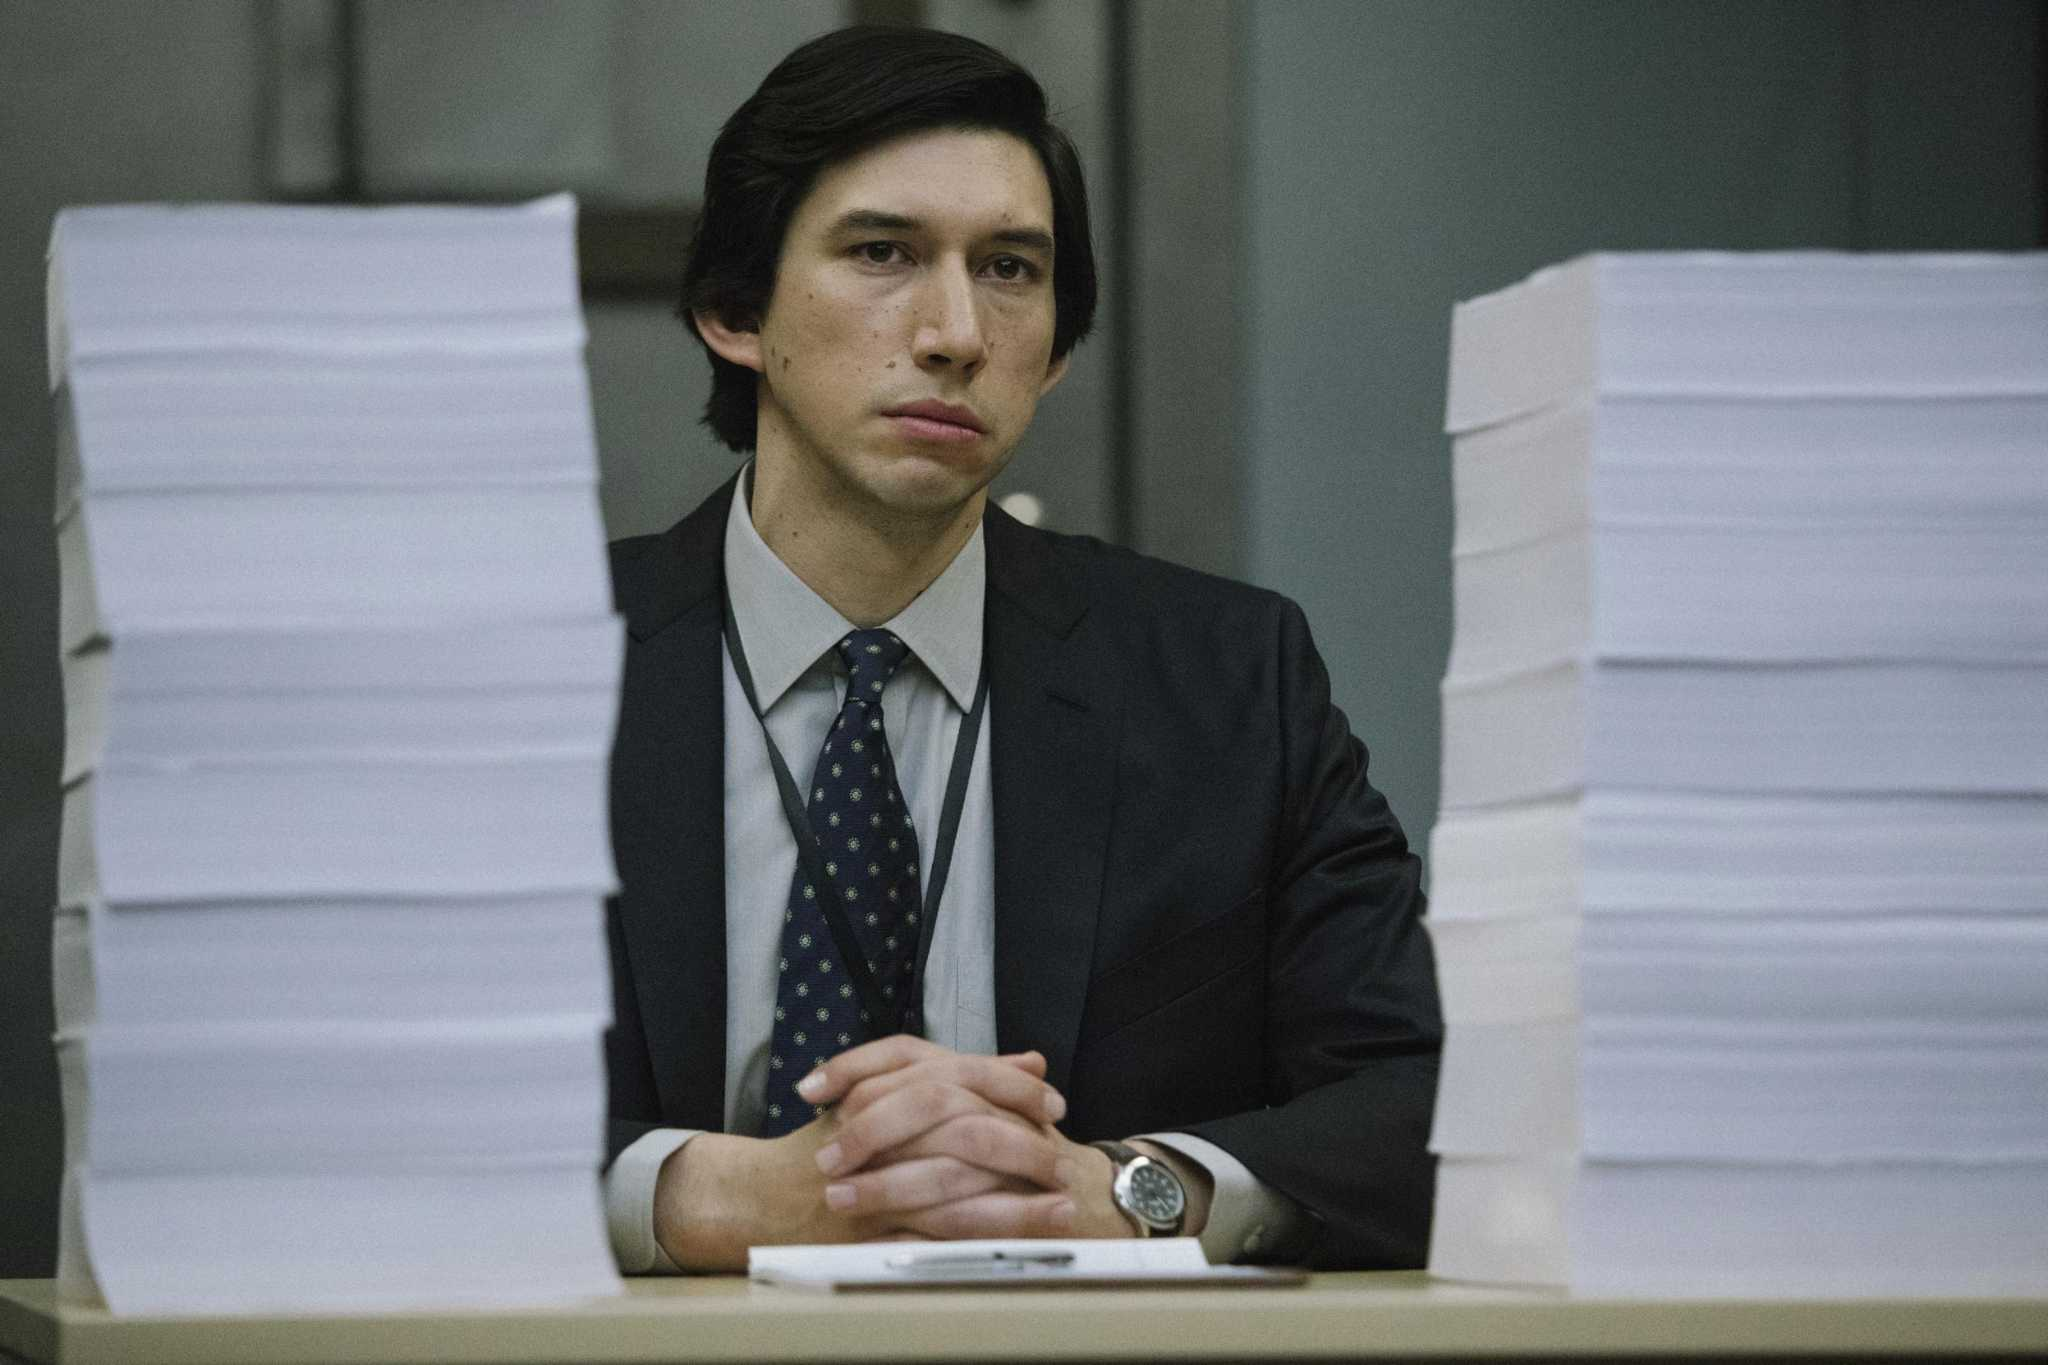 'The Report,' with Adam Driver, is about as dry as its name